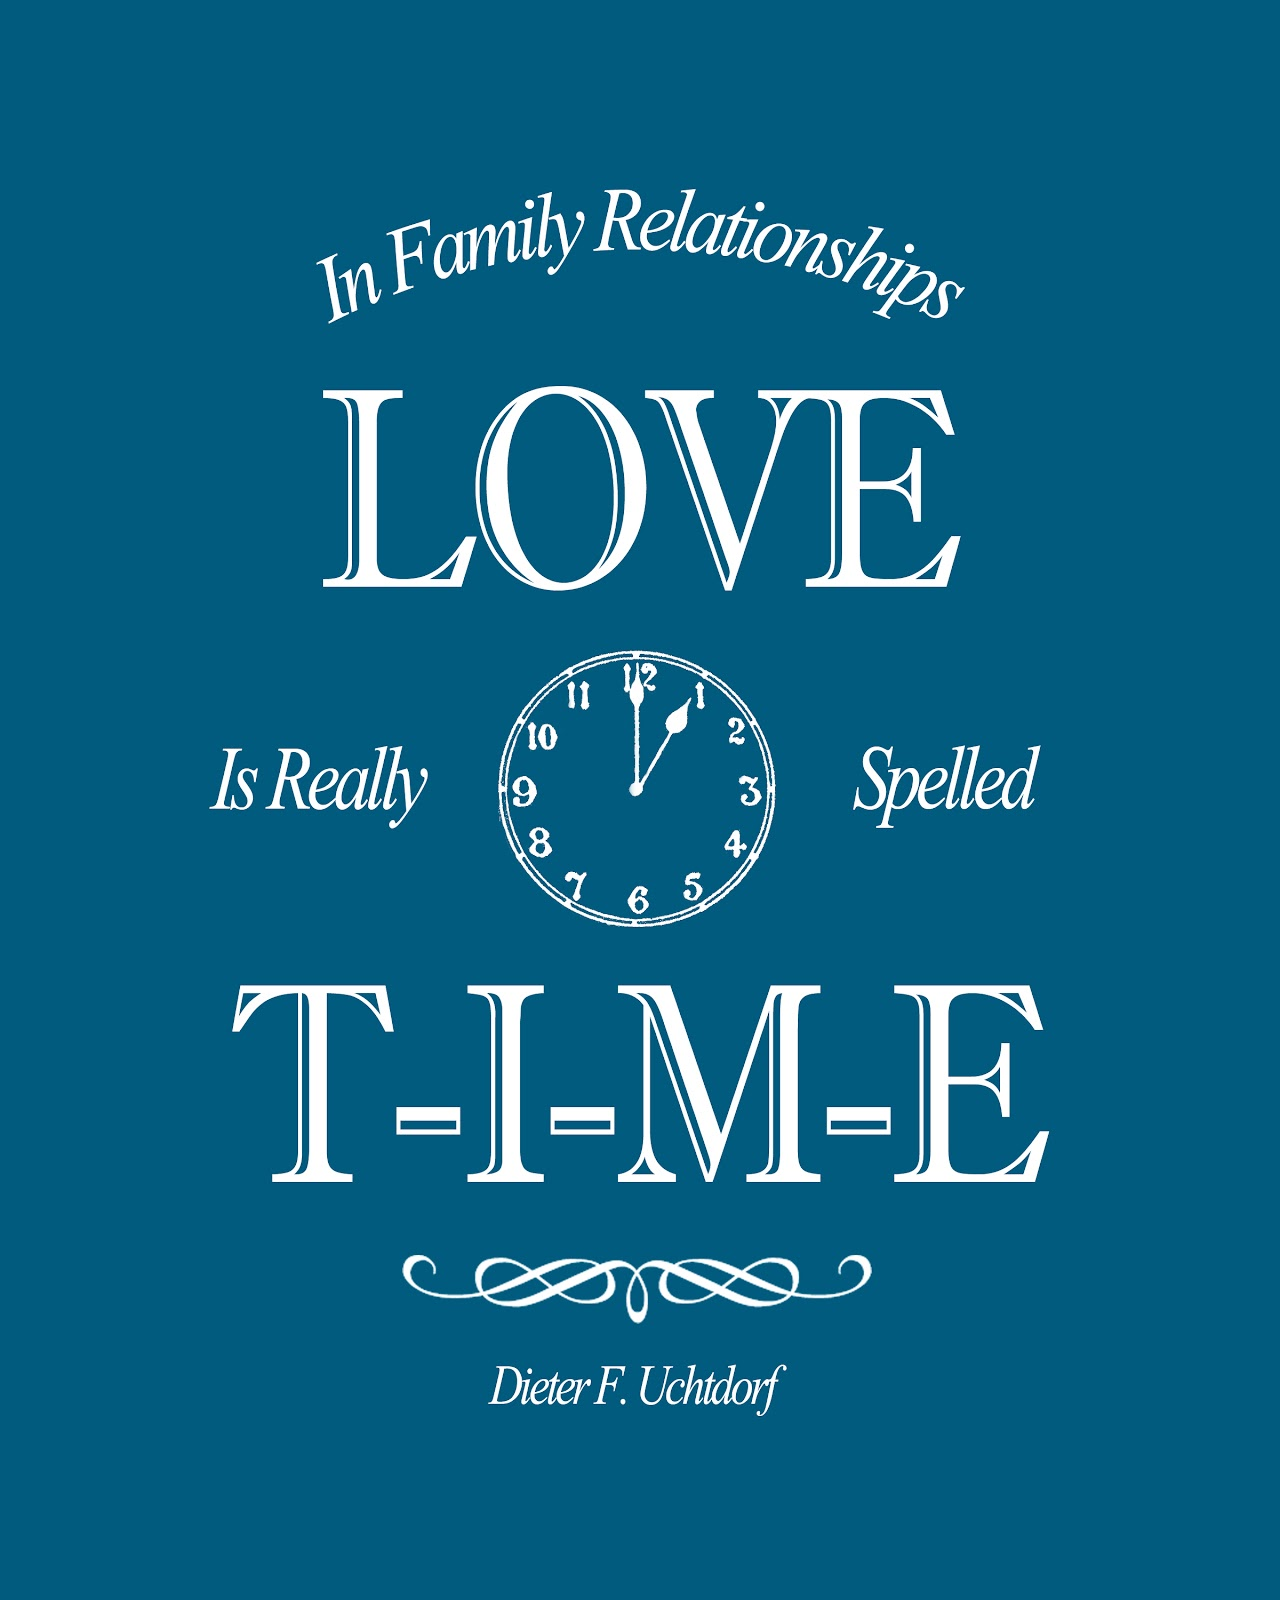 About Family Relationship Quotes: Quotable Queen: Love Is Really Spelled T-I-M-E